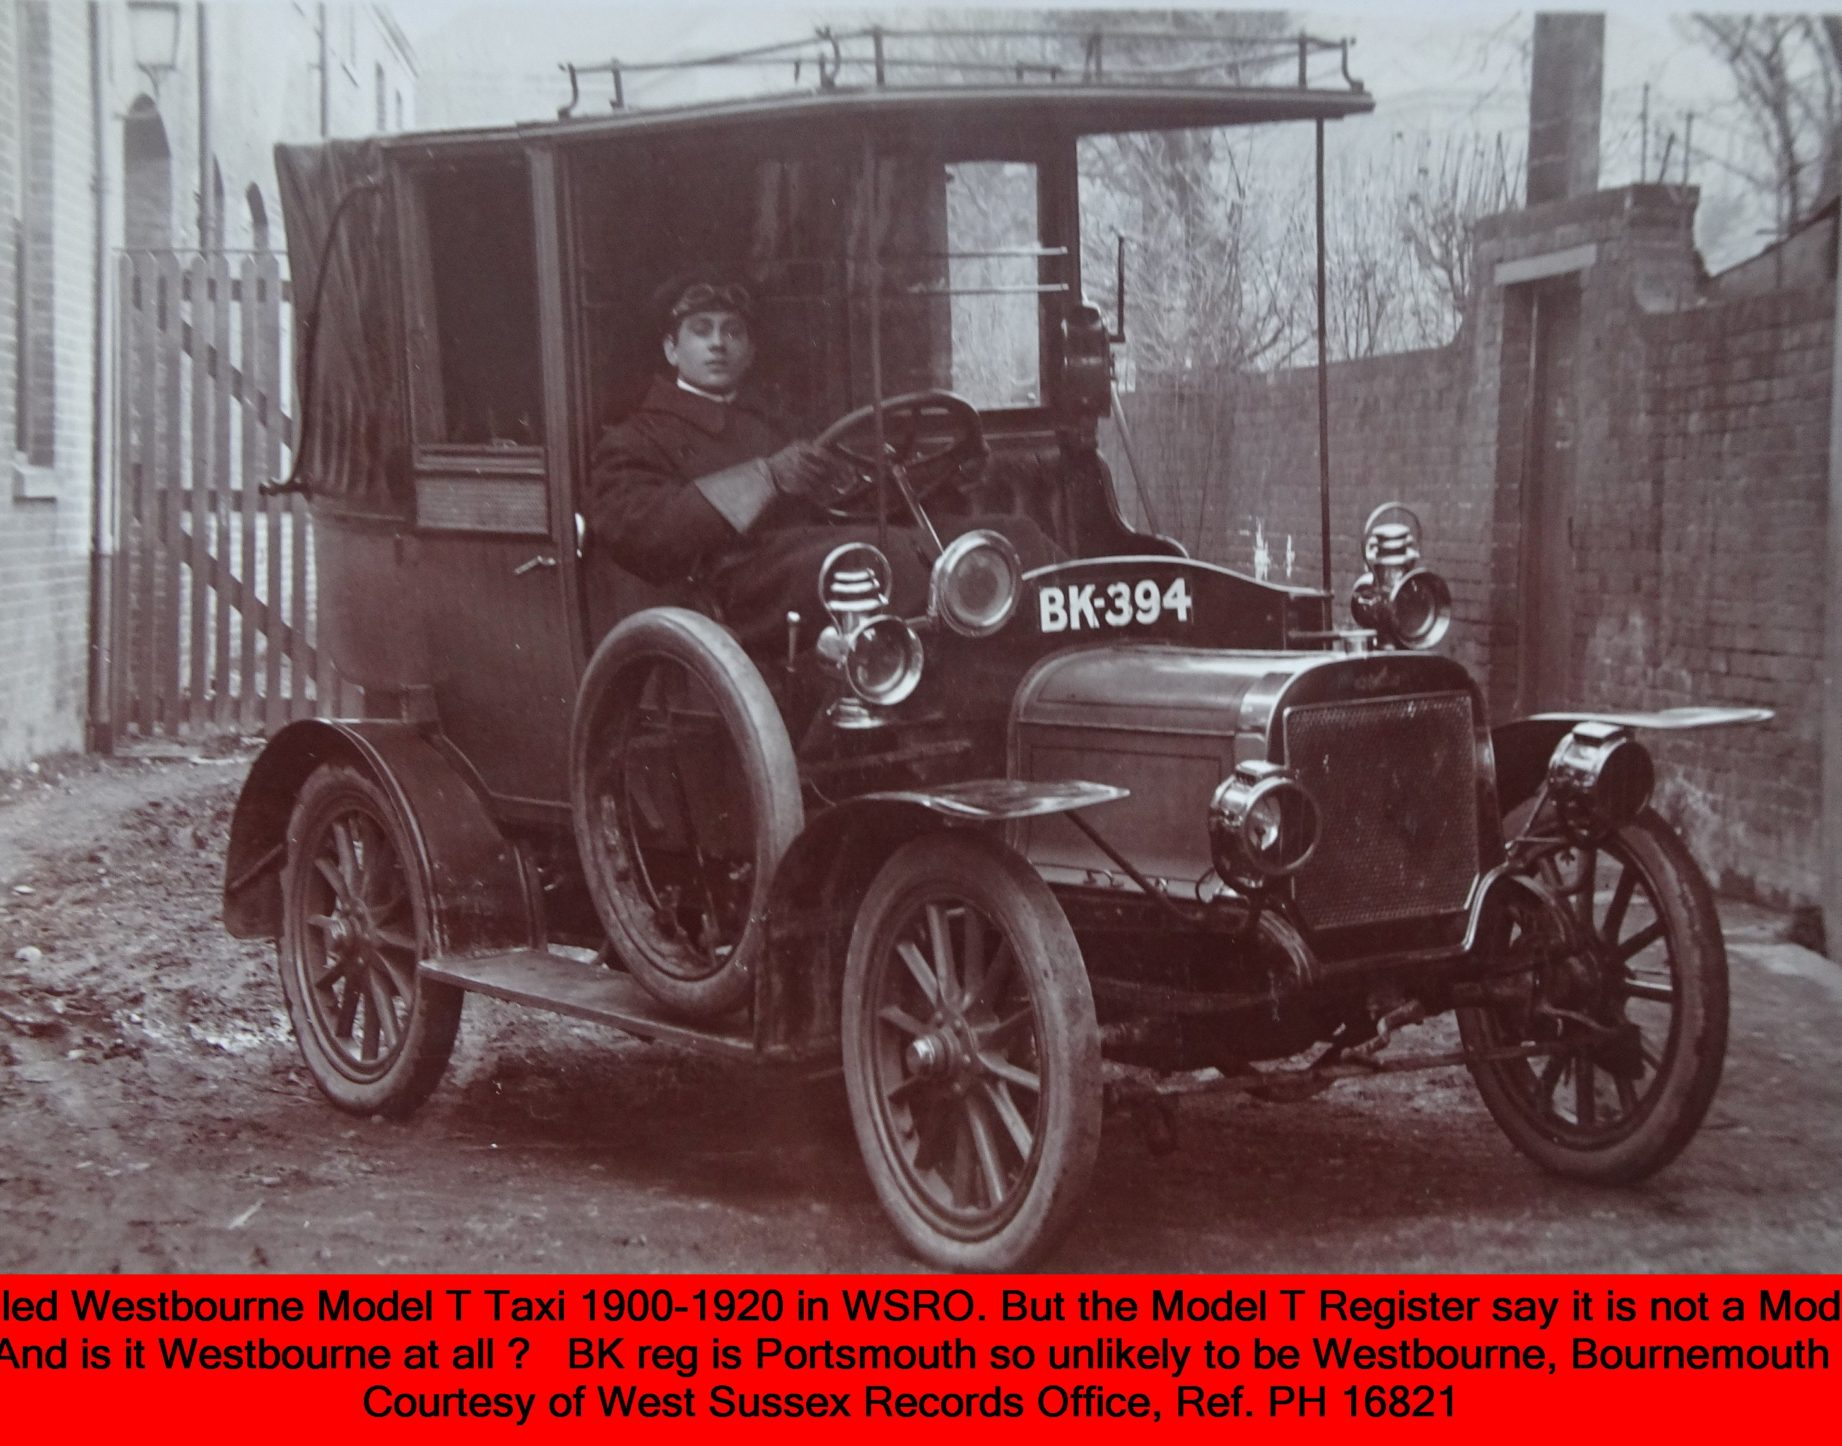 WESTBOURNE HISTORY PHOTO, TAXI , MODEL T, BK 394